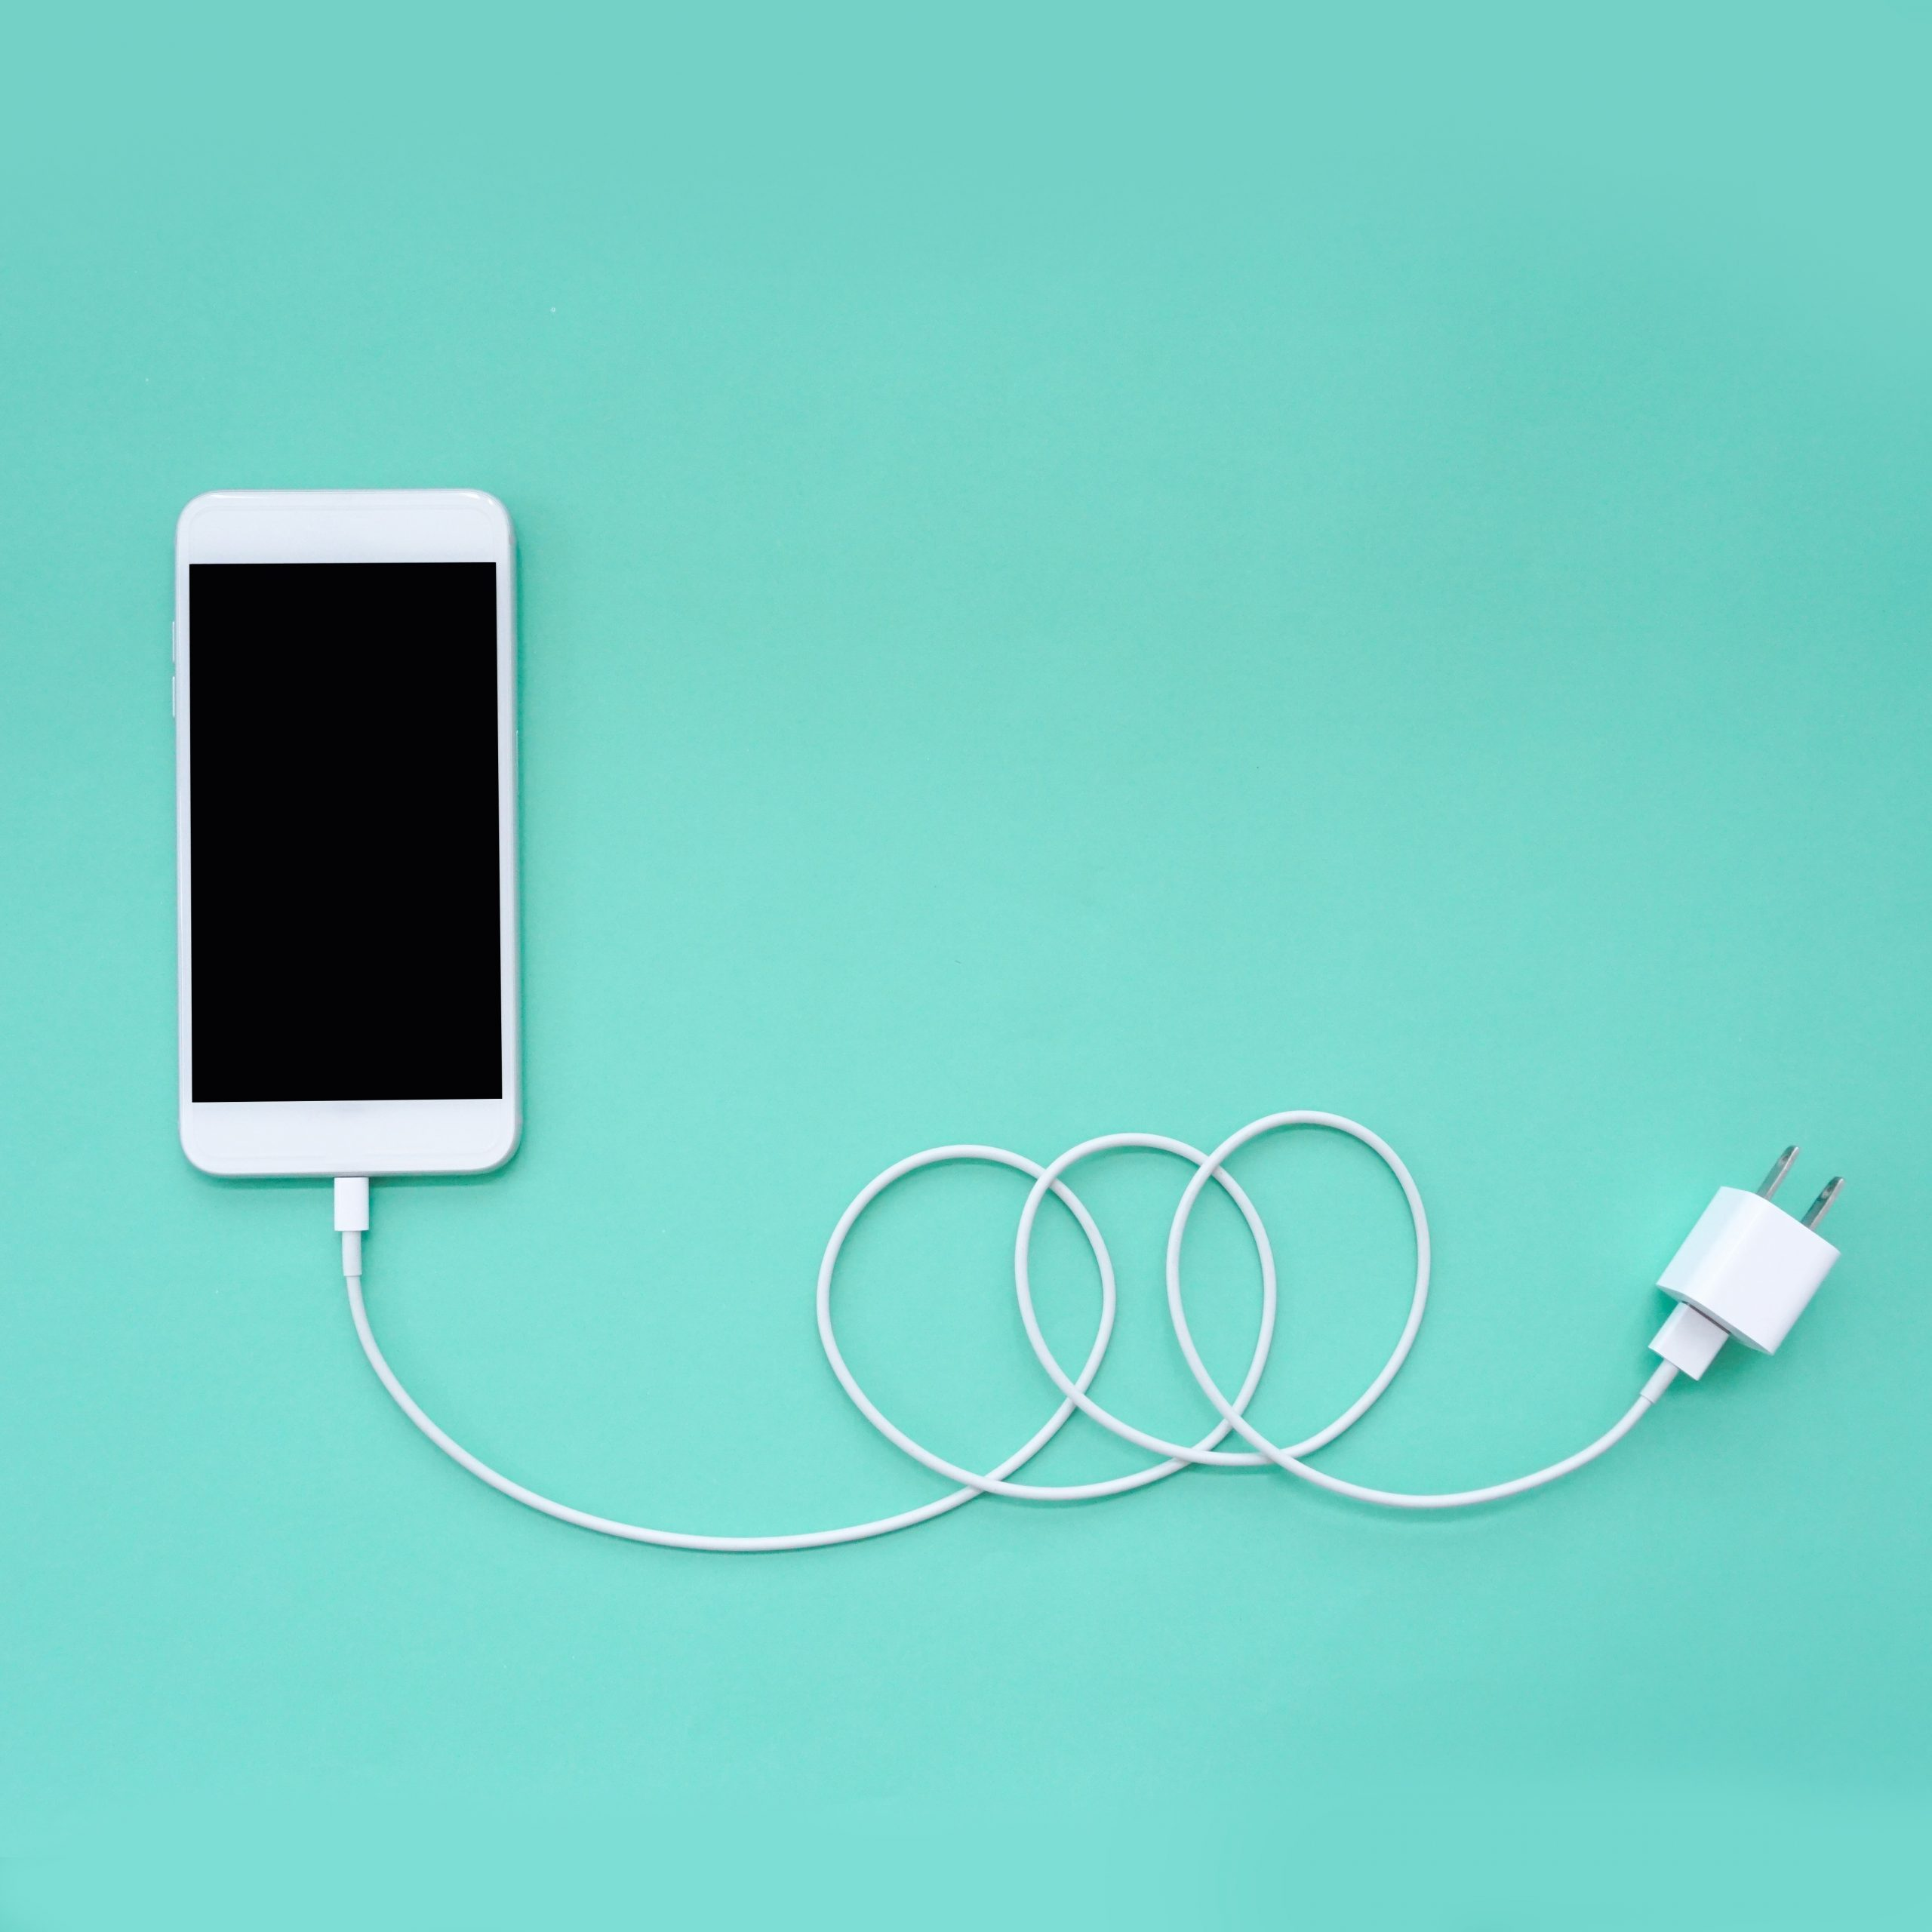 Smartphone Connects to Charger through USB Cable on Turquoise Background Top View; Shutterstock ID 1073489141